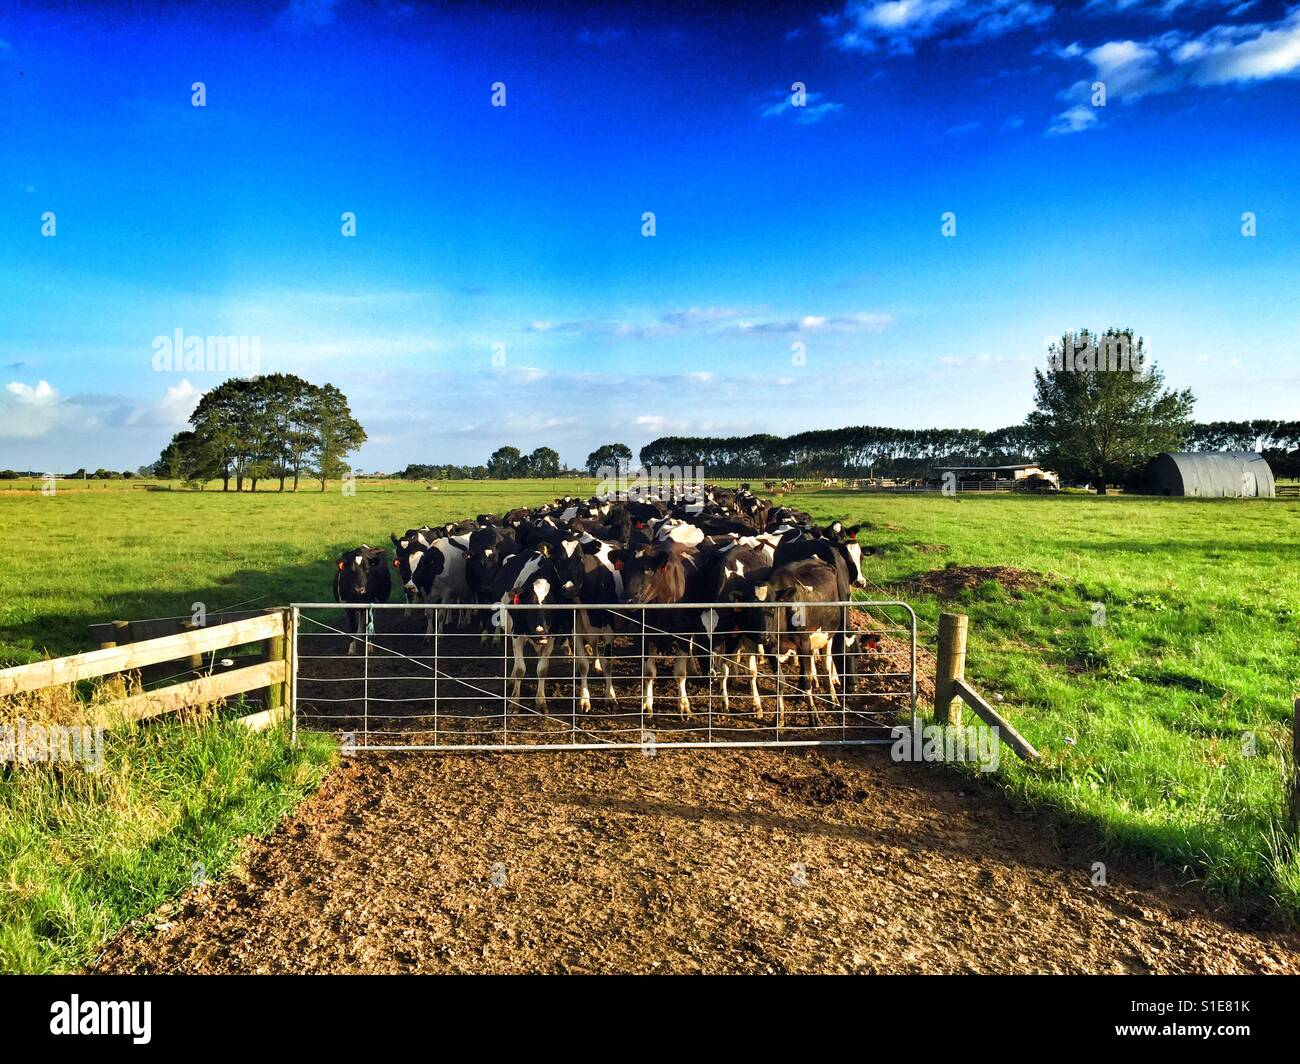 Cows Waiting at the Gate - Stock Image